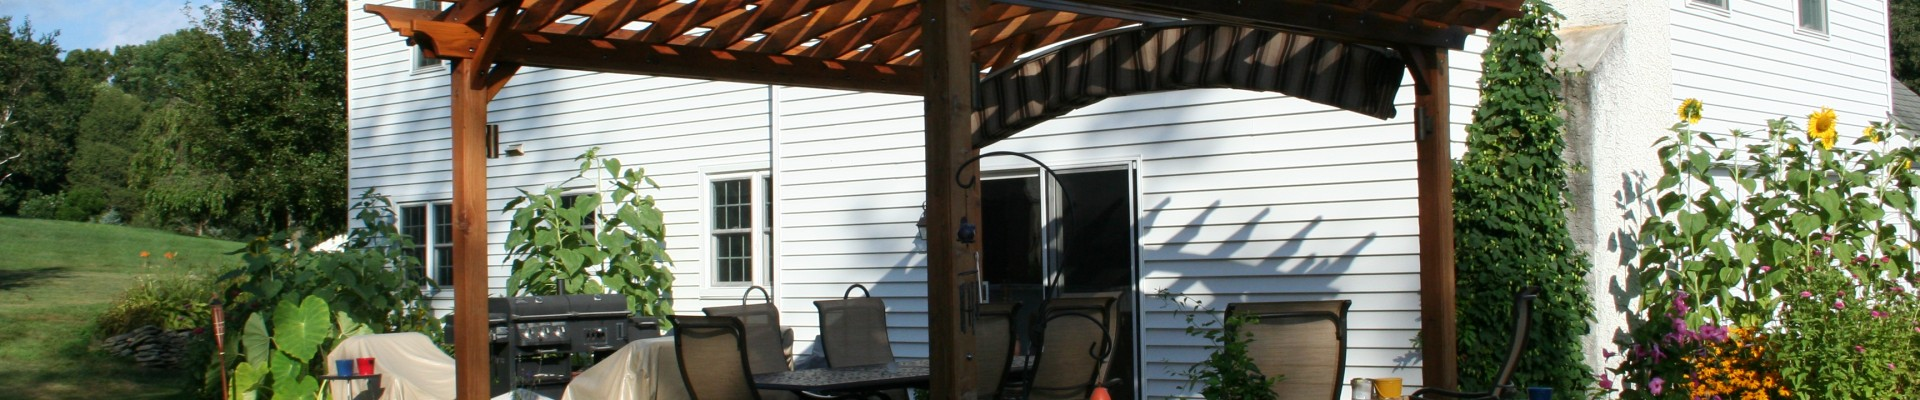 Patio designs with a Pergola